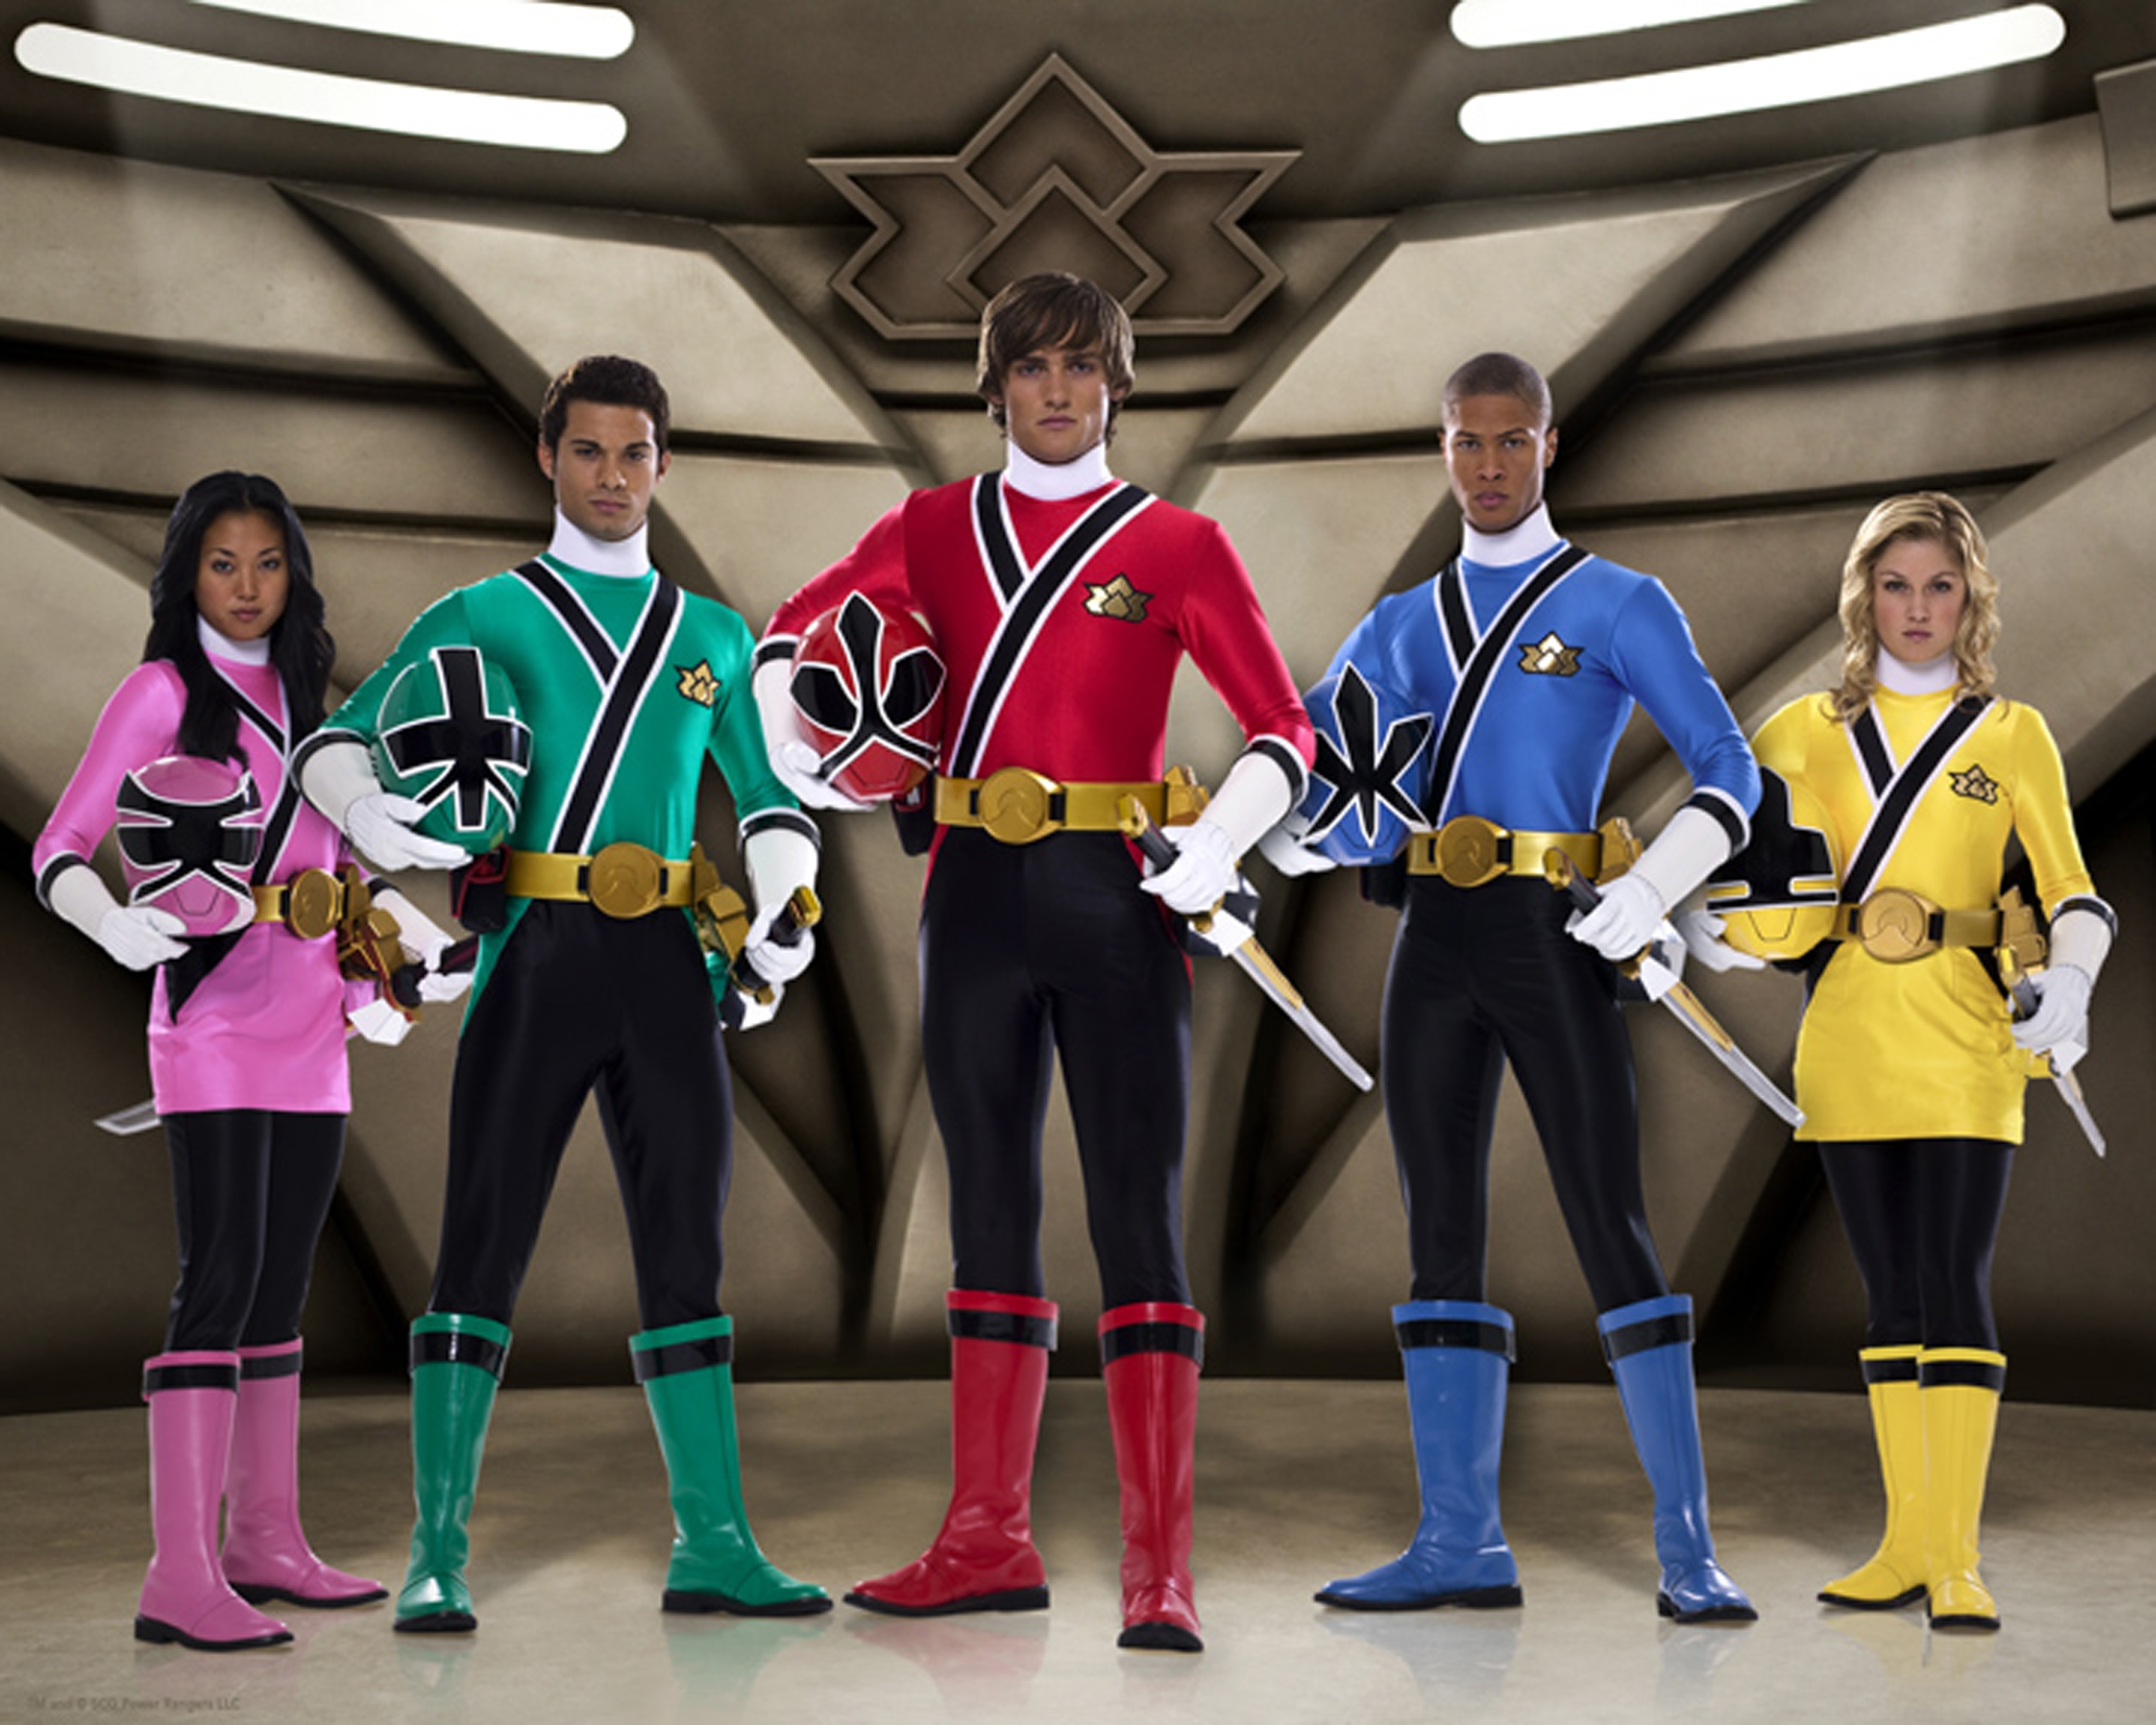 Power rangers samurai heads to france kidscreen - Power rangers samurai dessin ...